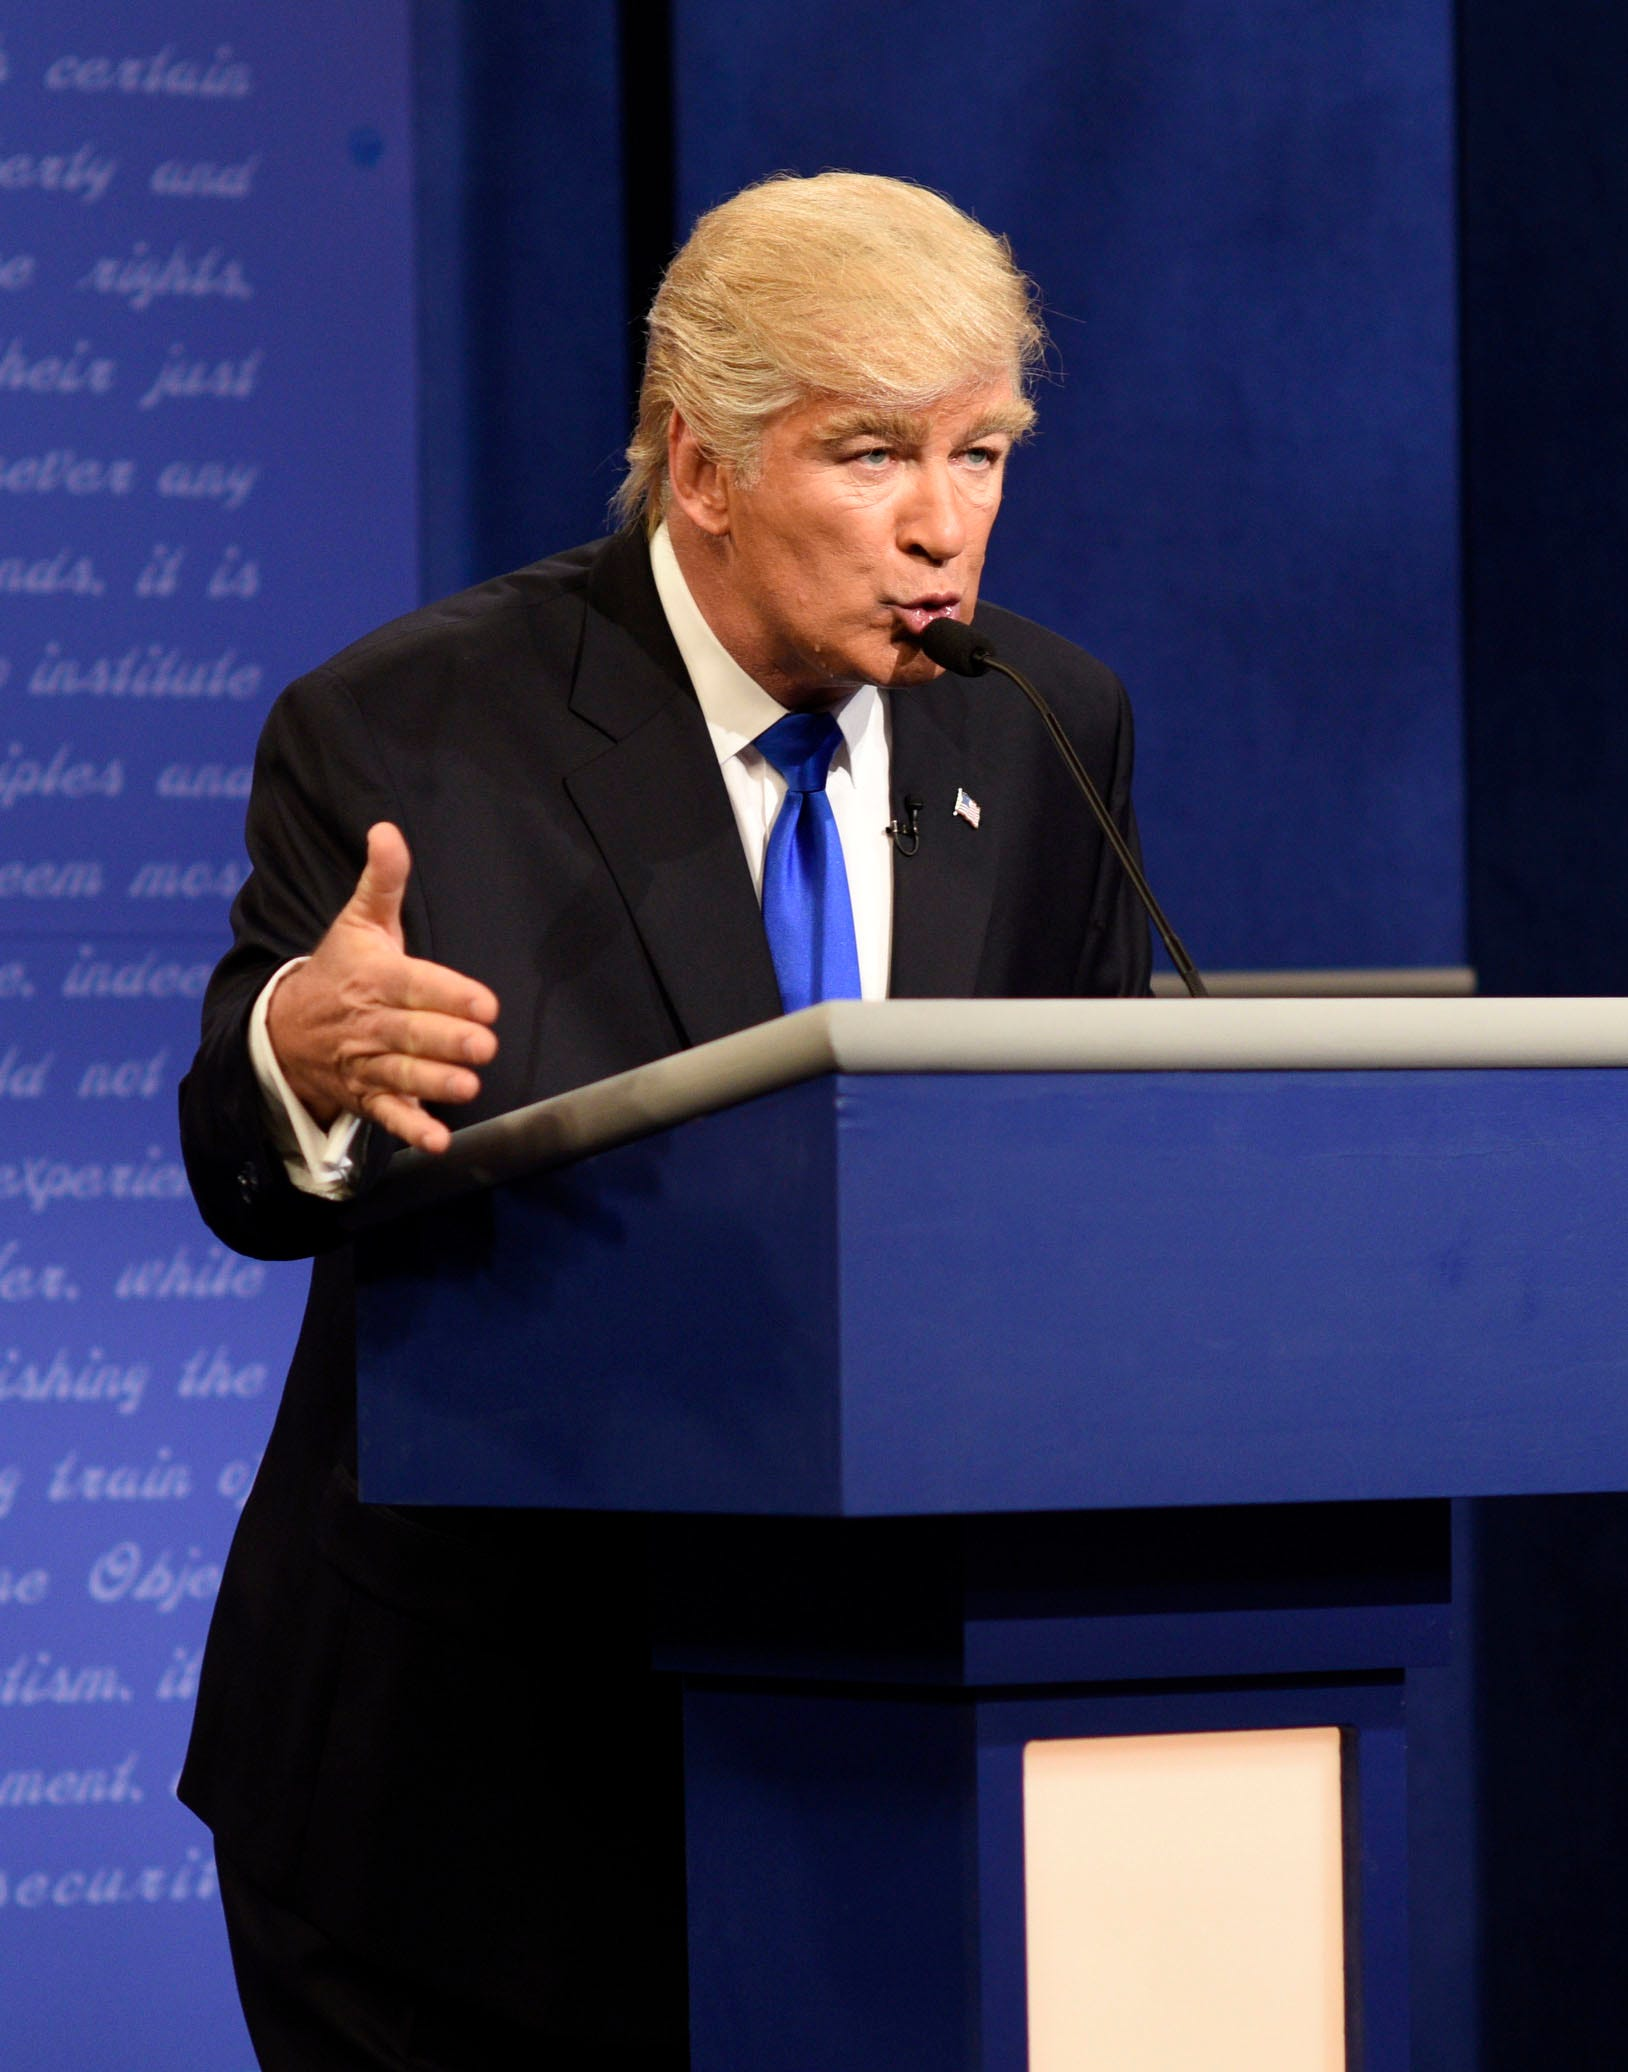 Alec Baldwin will host 'SNL' for record-breaking 17th time